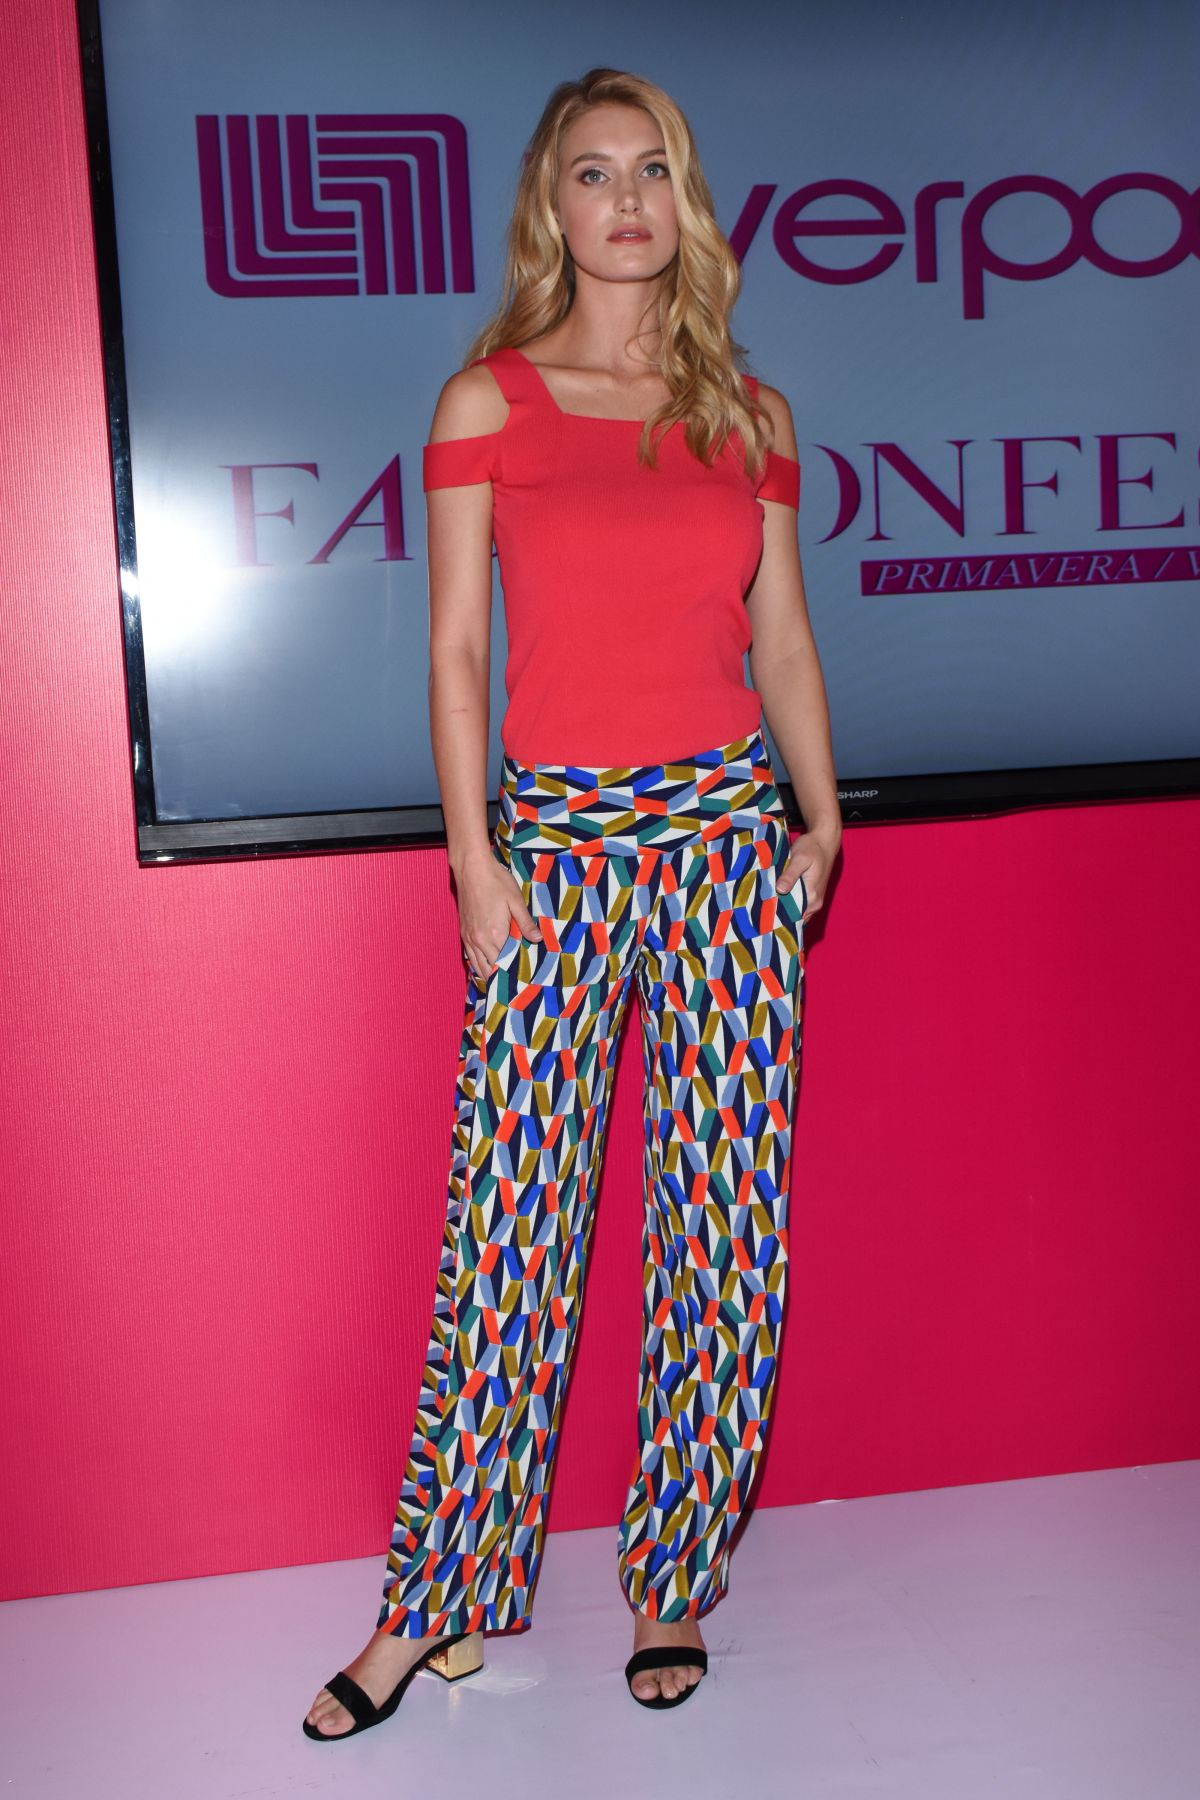 CAROLINE LOWE at Liverpool Fashion Fest Press Conference in Mexico City 03/08/2017